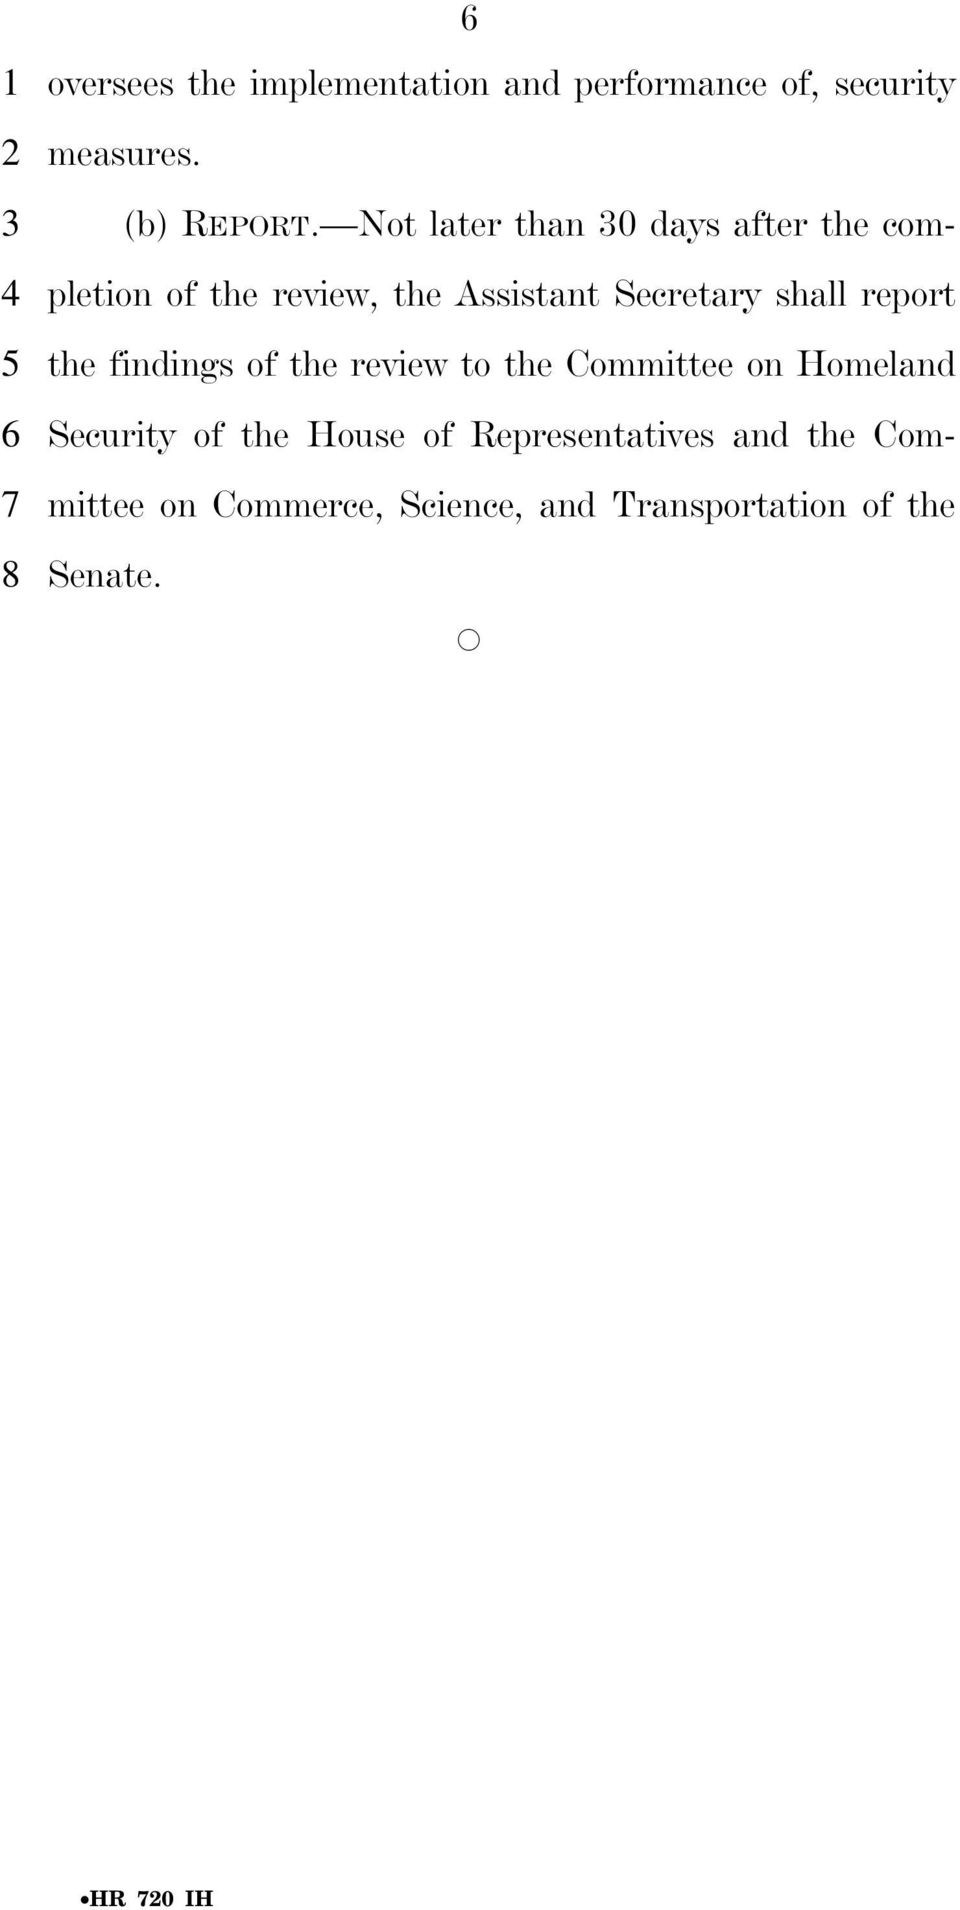 review to the Committee on Homeland Security of the House of Representatives and the Committee on Commerce, Science, and